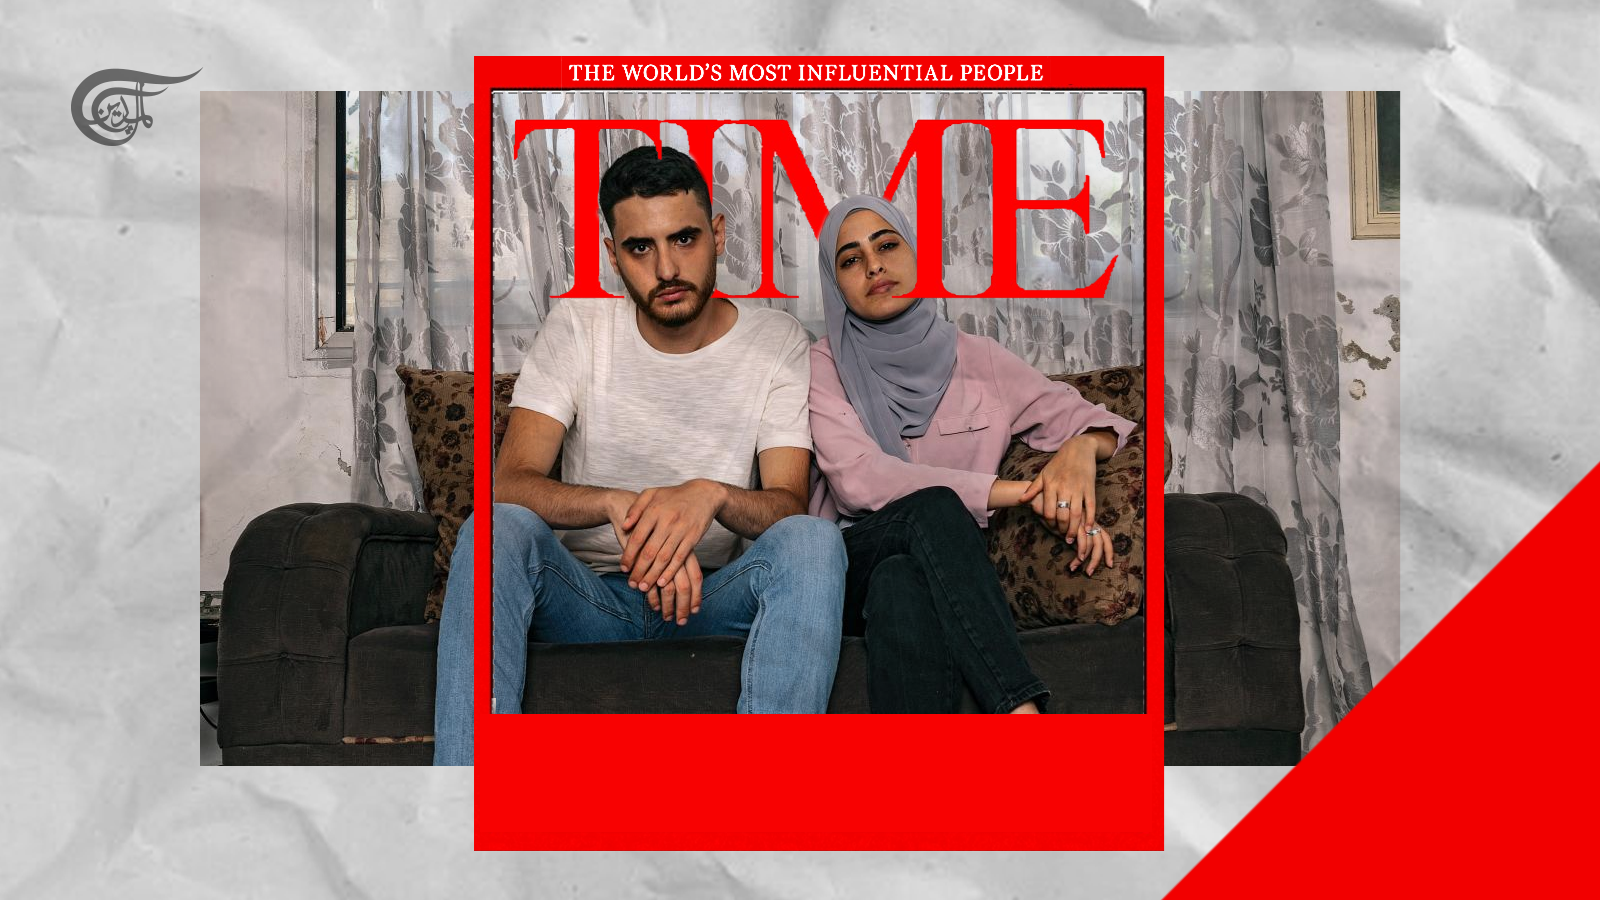 Palestinian Siblings Mohammad and Muna El-Kurd are amongst this year's TIME100